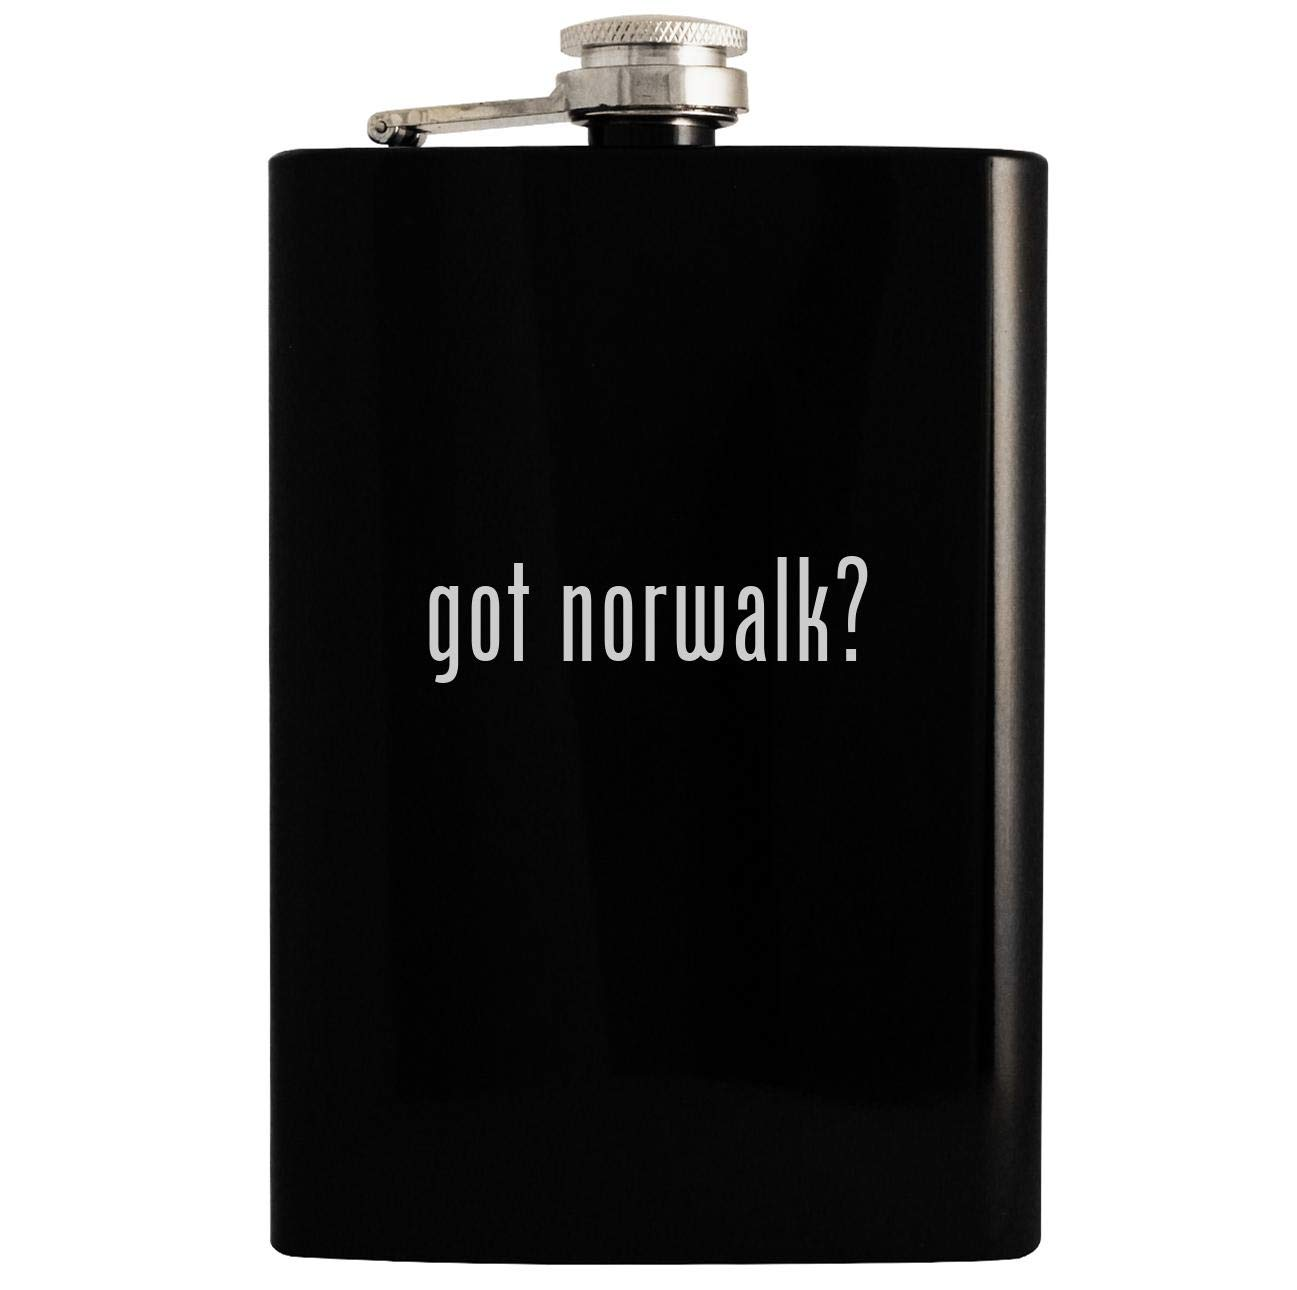 got norwalk? - Black 8oz Hip Drinking Alcohol Flask